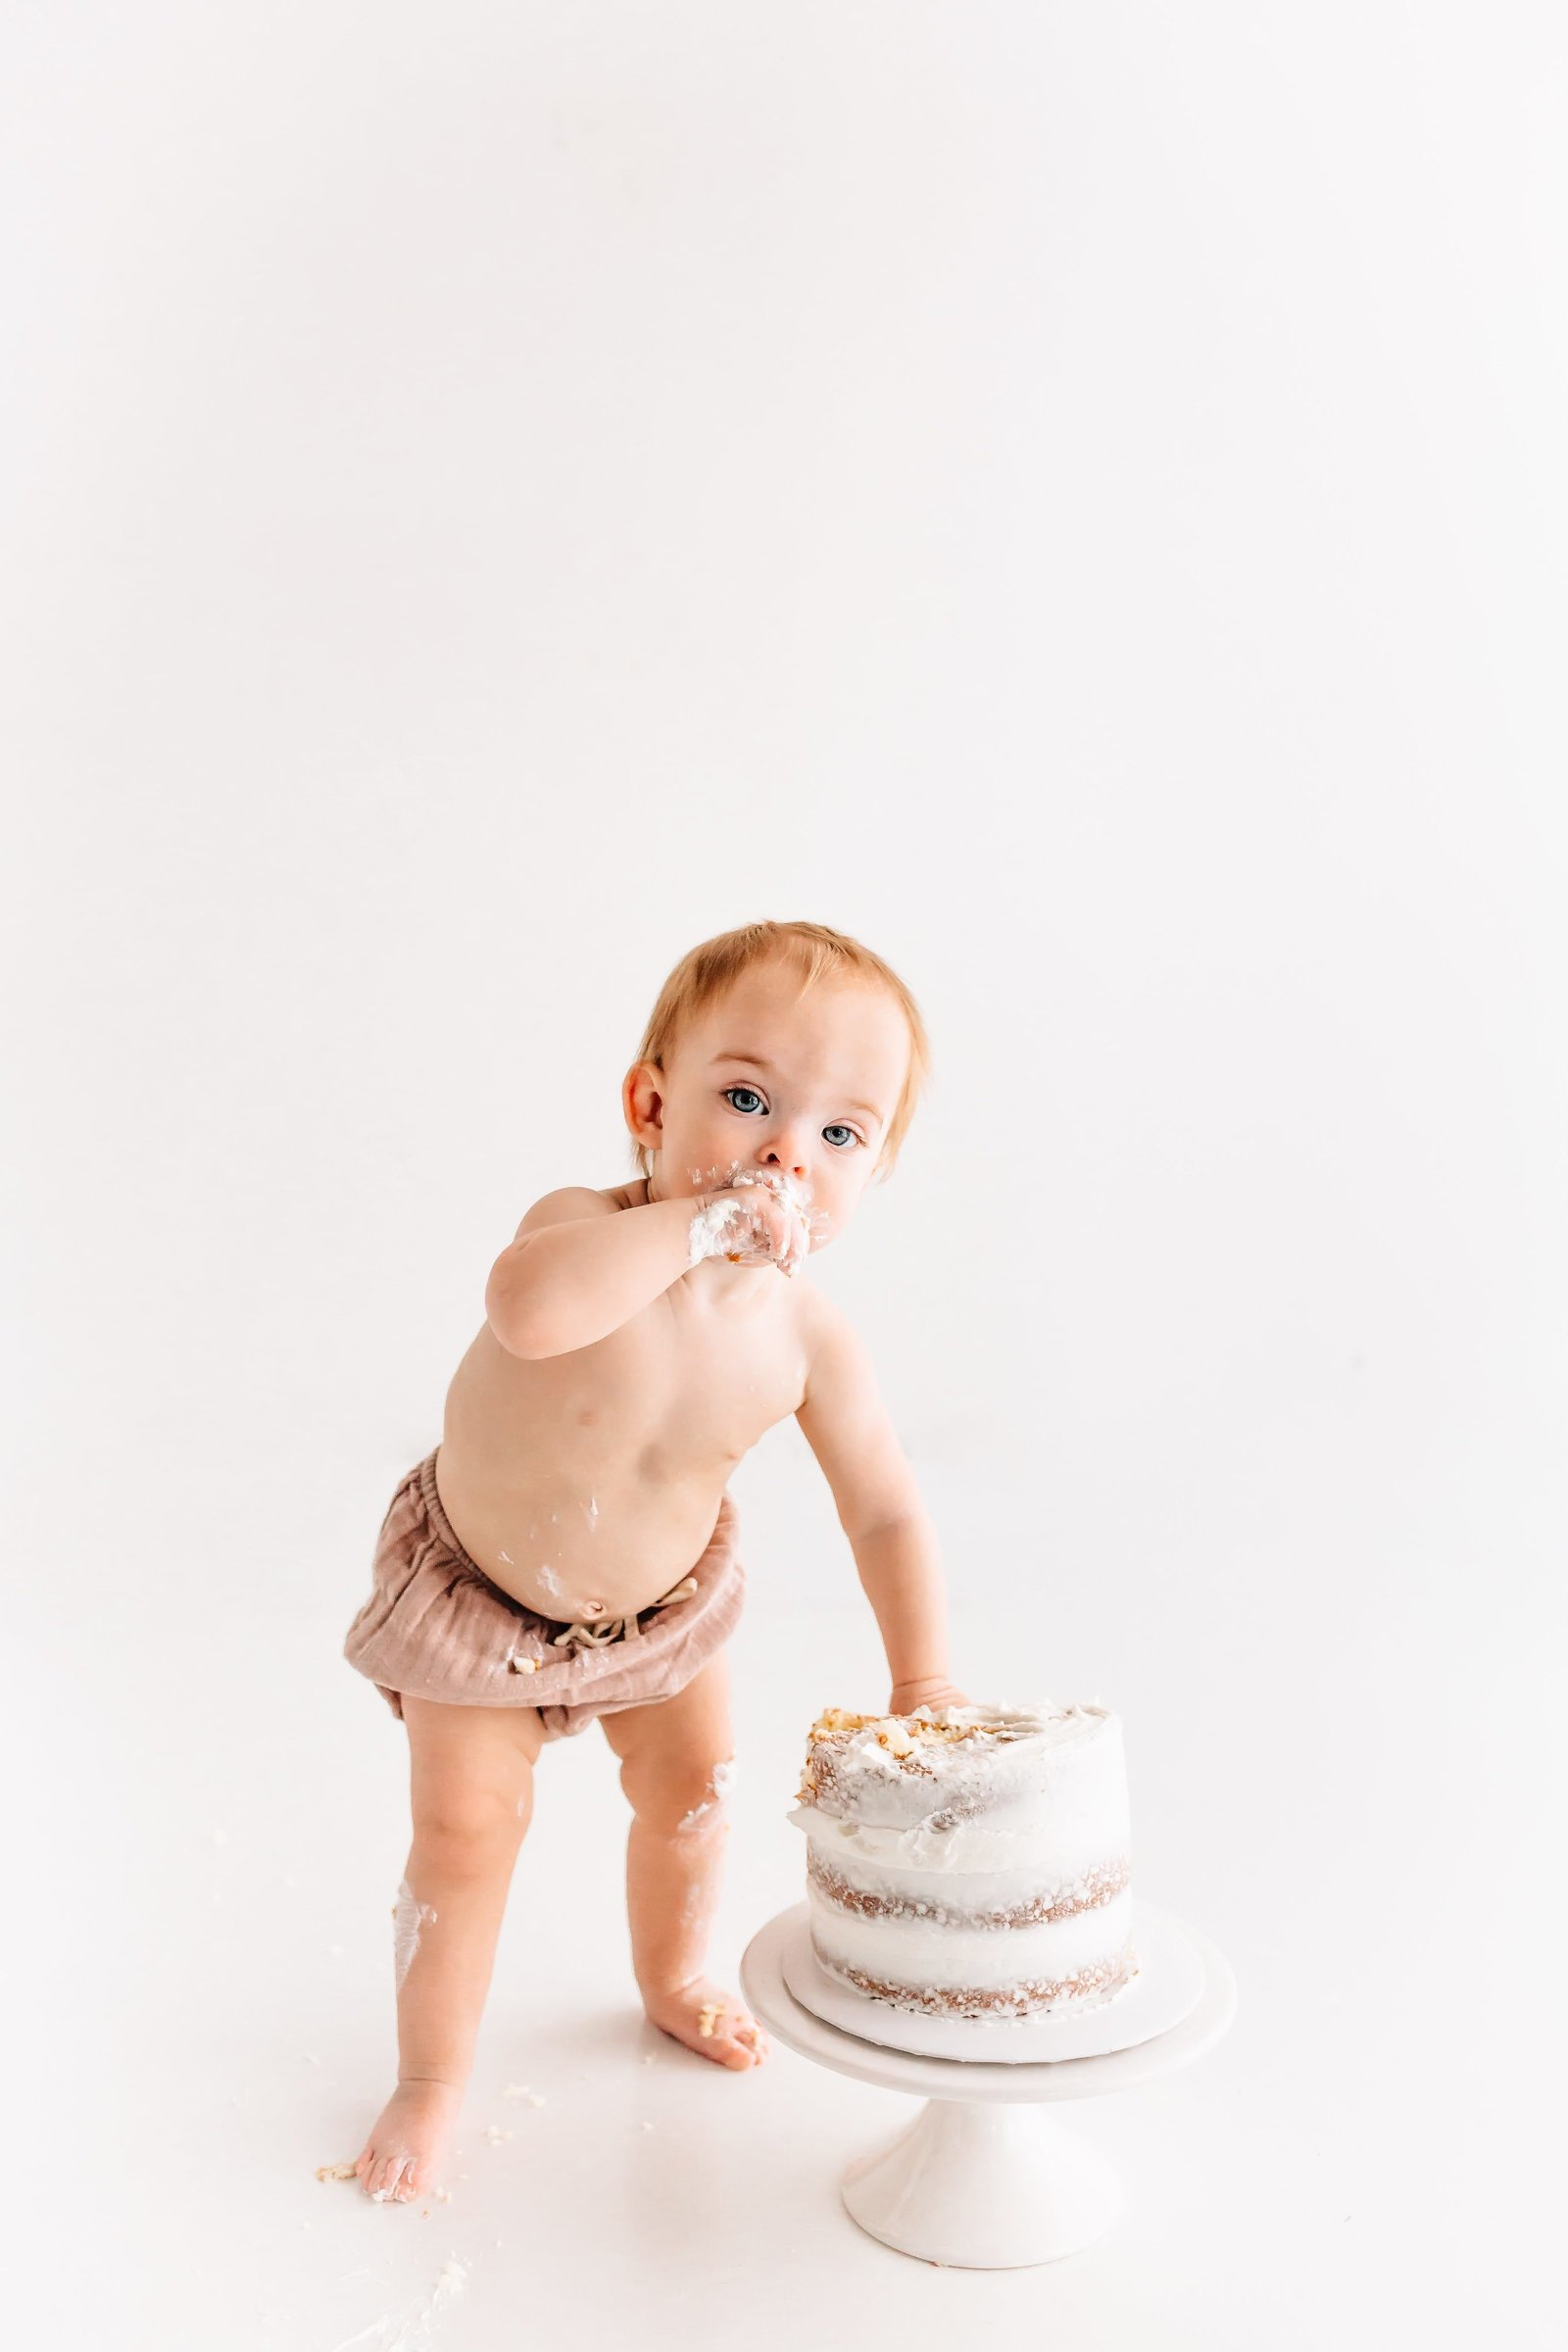 St_Louis_Baby_Photographer_Kelly_Laramore_Photography_109